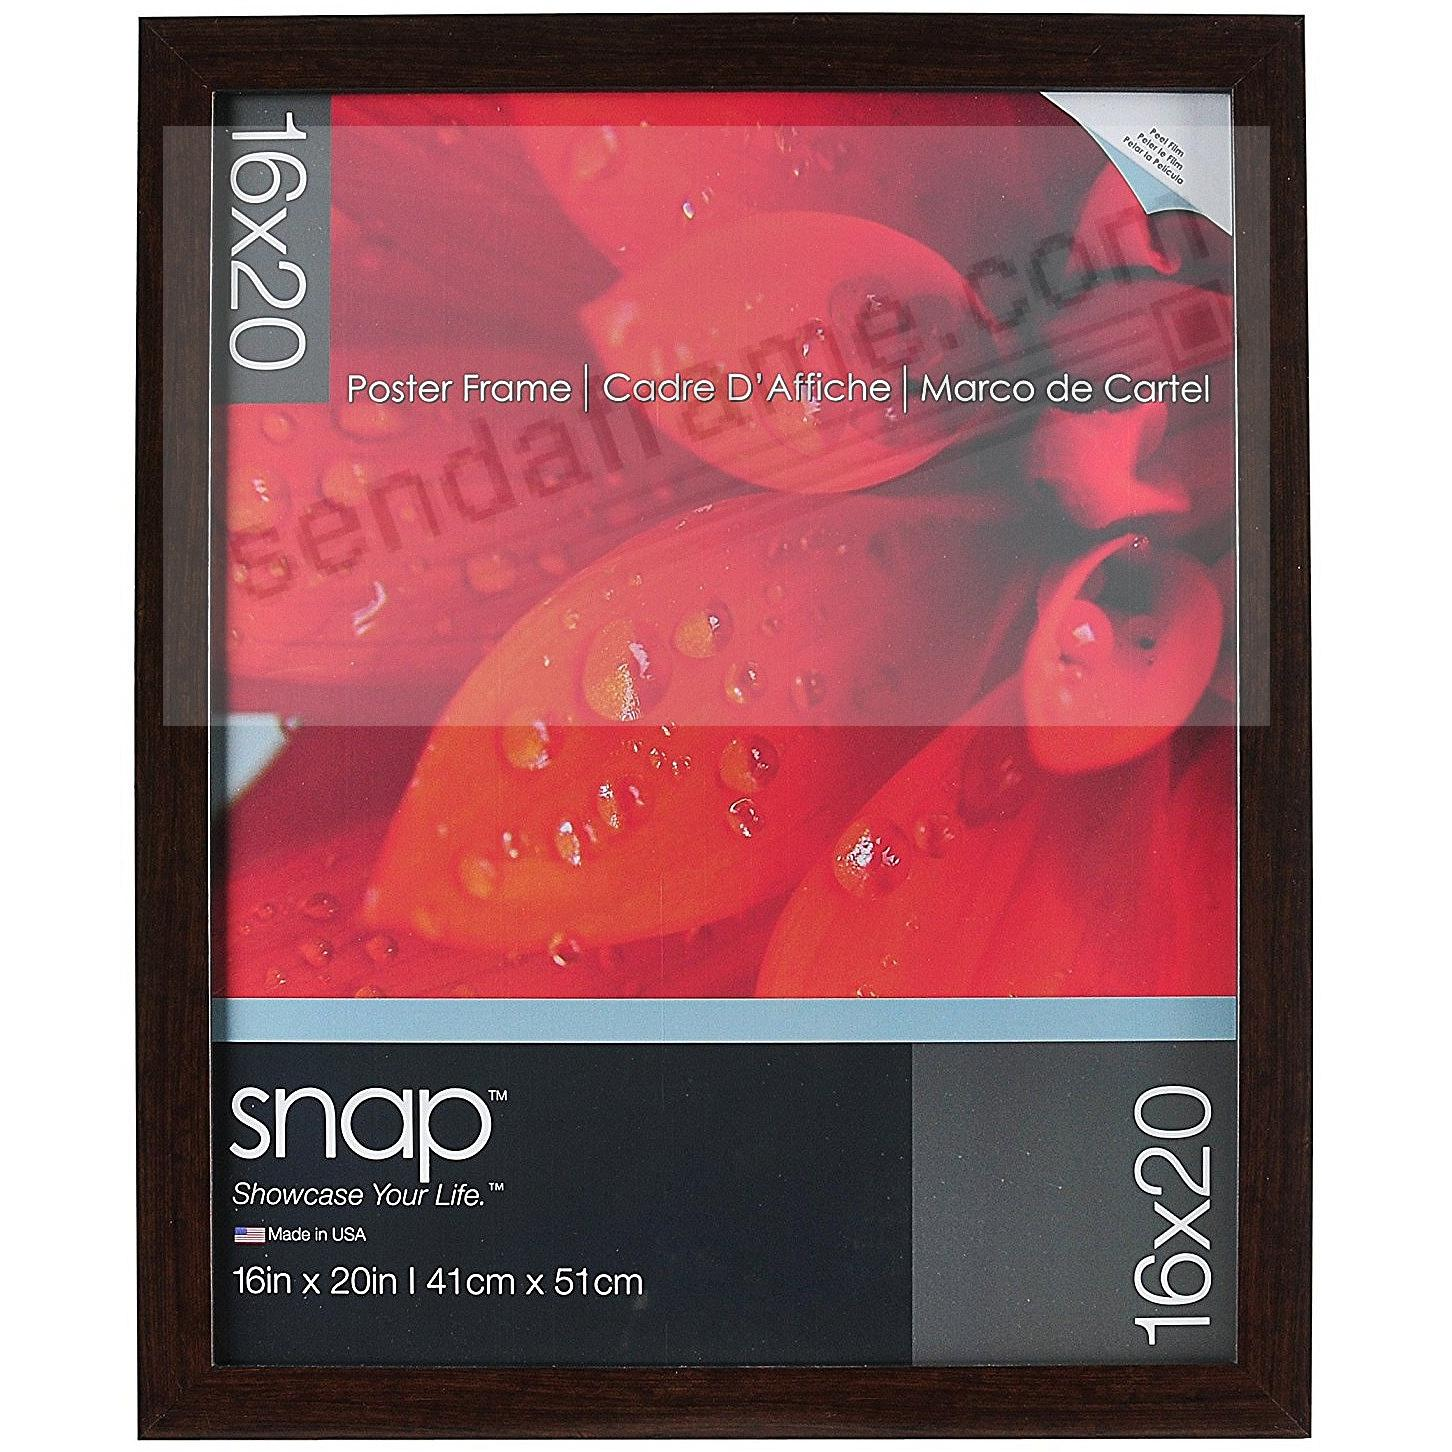 SNAP® Ashwood Brown Poster 16x20 Frame